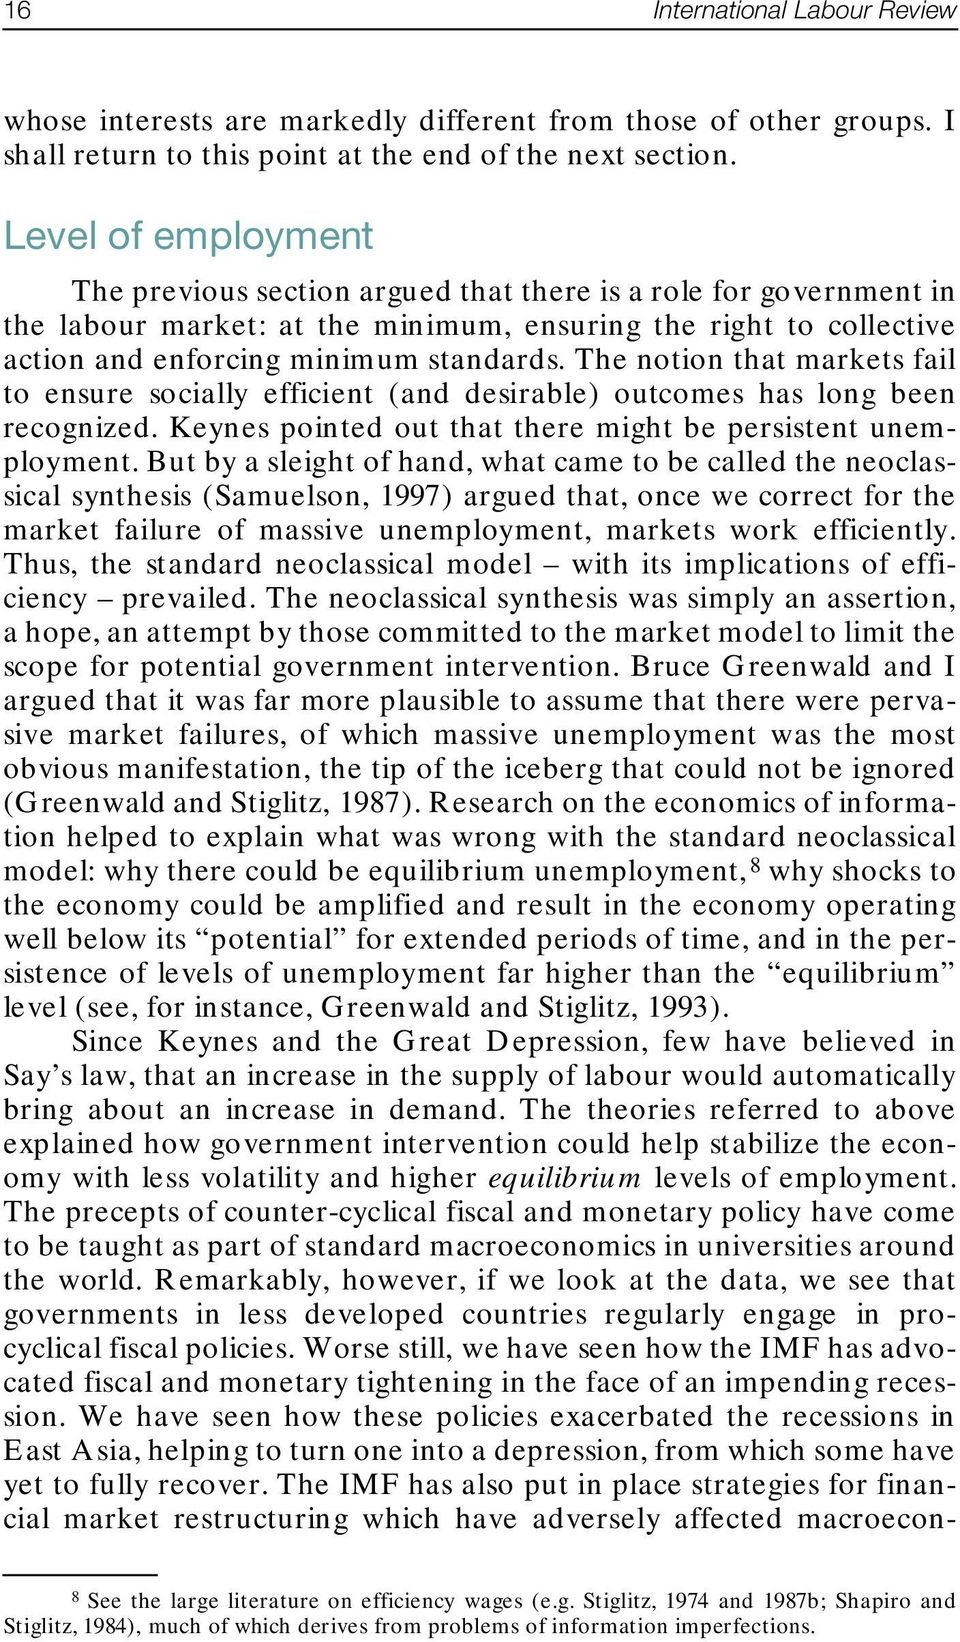 The notion that markets fail to ensure socially efficient (and desirable) outcomes has long been recognized. Keynes pointed out that there might be persistent unemployment.